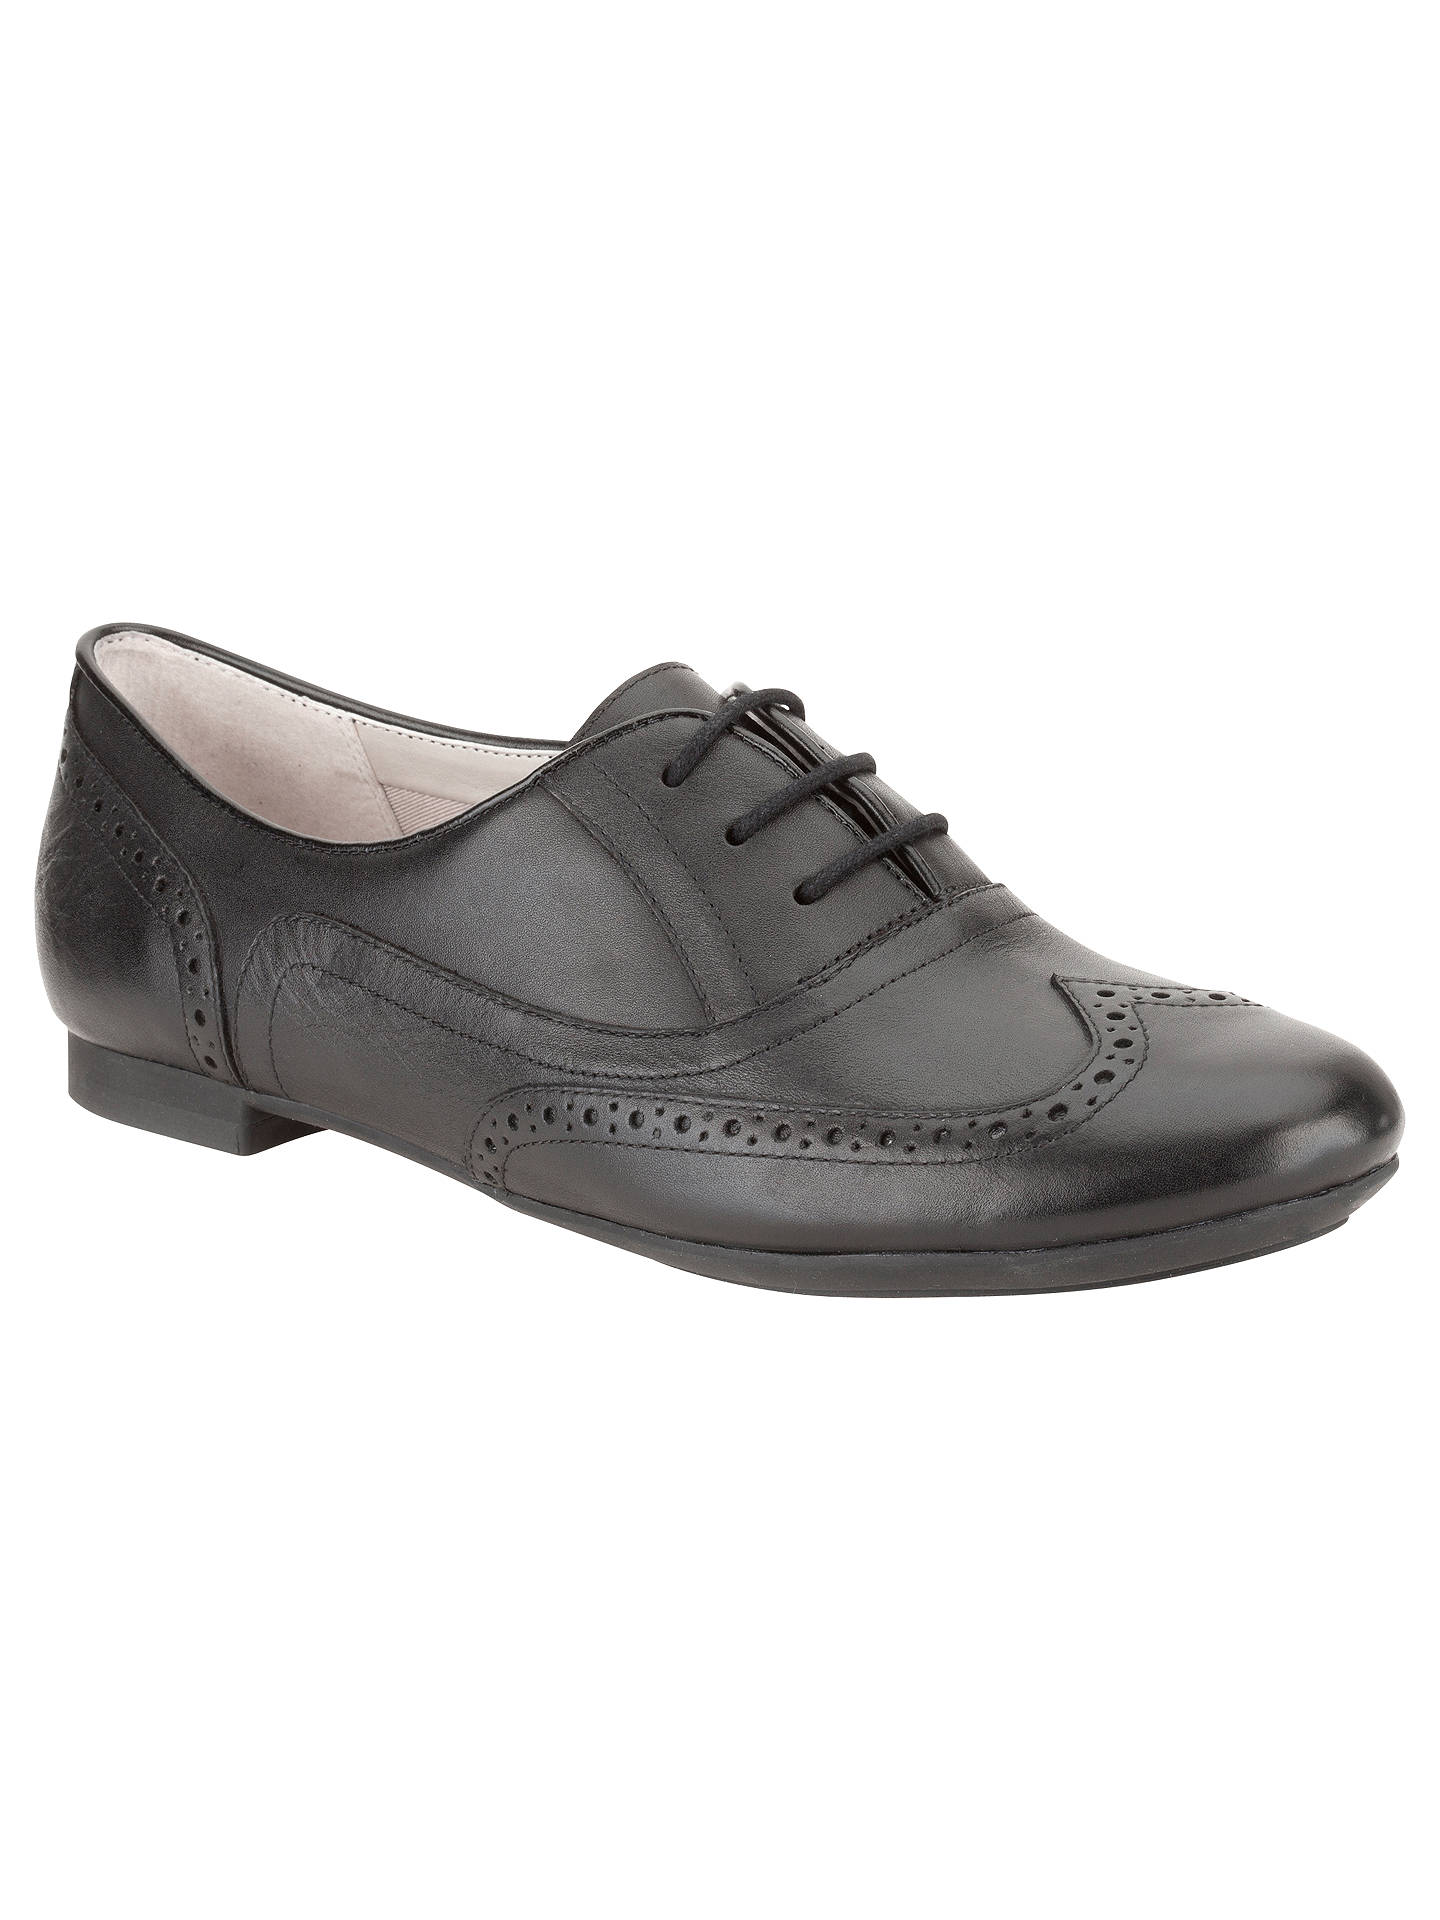 9c2a82aa942 Clarks Carousel Trick Lace-Up Leather Shoes